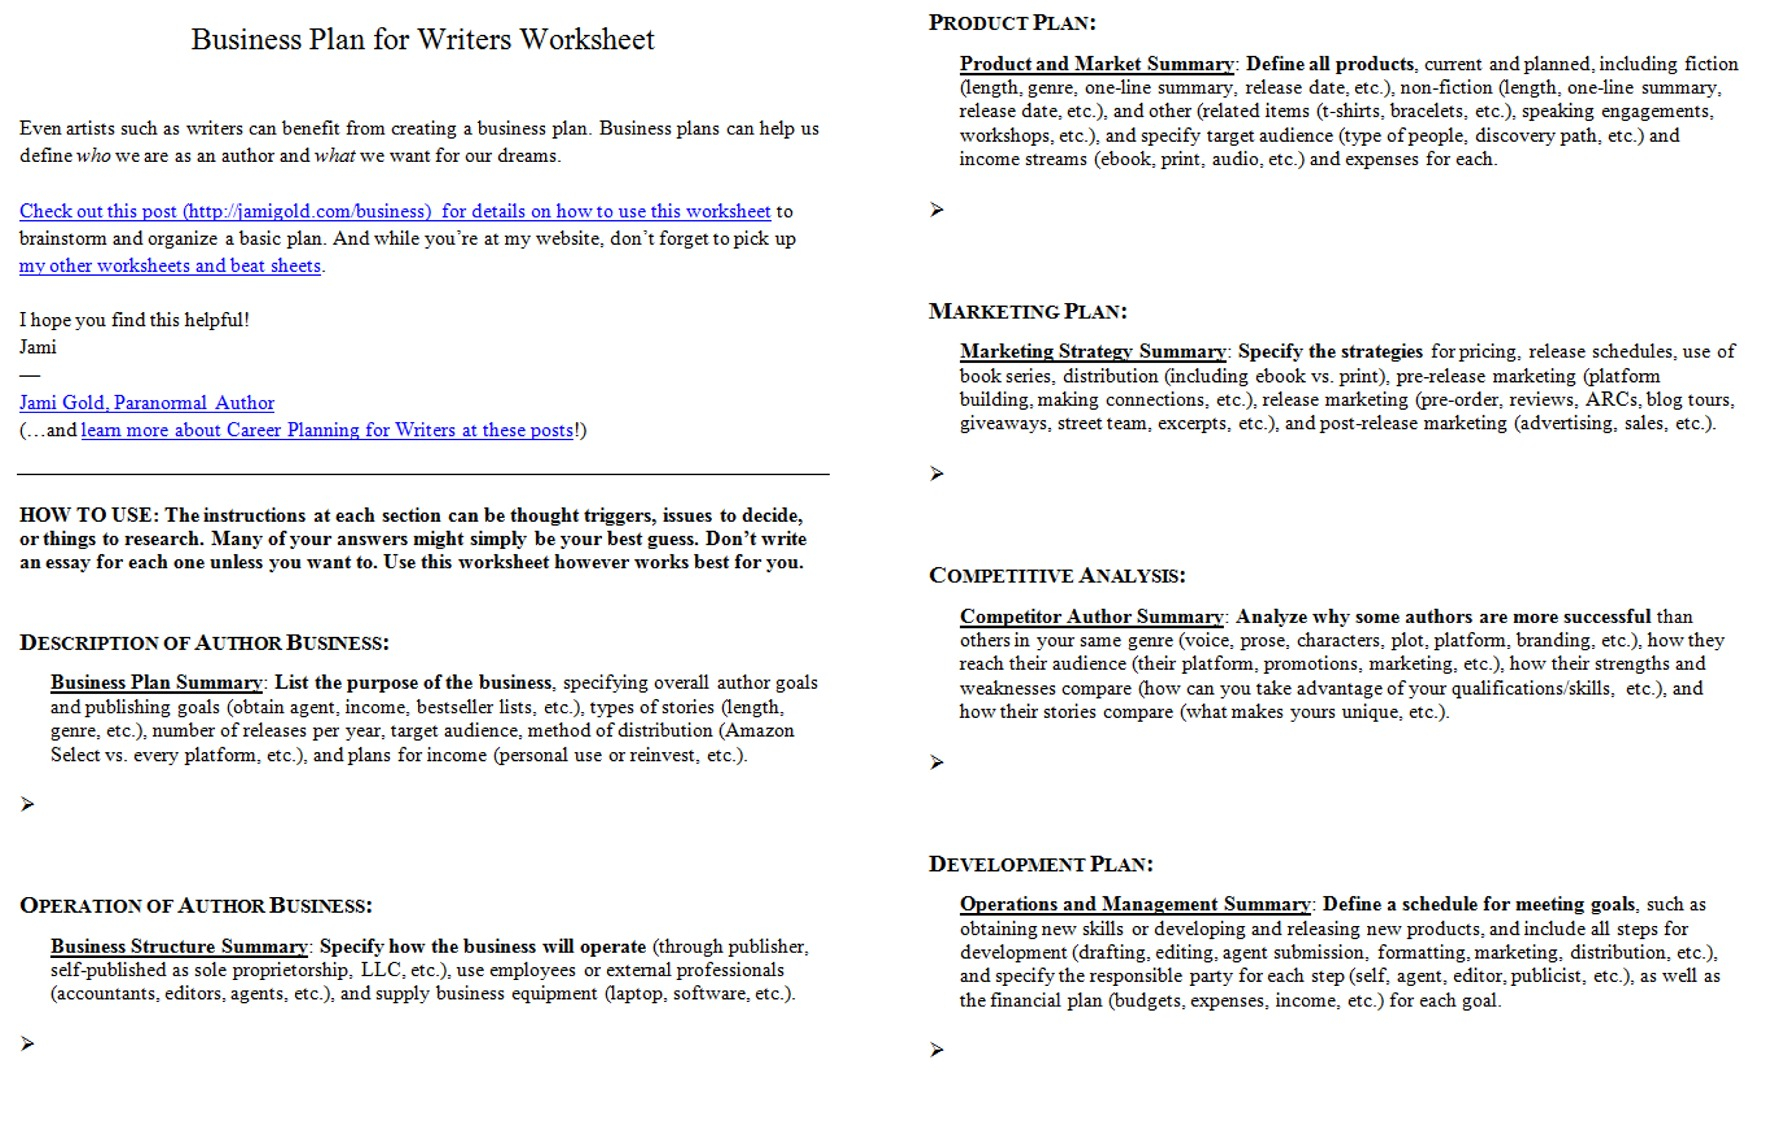 Proatmealus  Pretty Worksheets For Writers  Jami Gold Paranormal Author With Magnificent Screen Shot Of Both Pages Of The Business Plan For Writers Worksheet With Appealing Schedule D Tax Worksheet  Also October Sky Movie Worksheet In Addition Transformation Reflection Worksheet And Free Pre K Printables Worksheet As Well As Binomials Worksheet Additionally Aa Step Worksheets Step  From Jamigoldcom With Proatmealus  Magnificent Worksheets For Writers  Jami Gold Paranormal Author With Appealing Screen Shot Of Both Pages Of The Business Plan For Writers Worksheet And Pretty Schedule D Tax Worksheet  Also October Sky Movie Worksheet In Addition Transformation Reflection Worksheet From Jamigoldcom